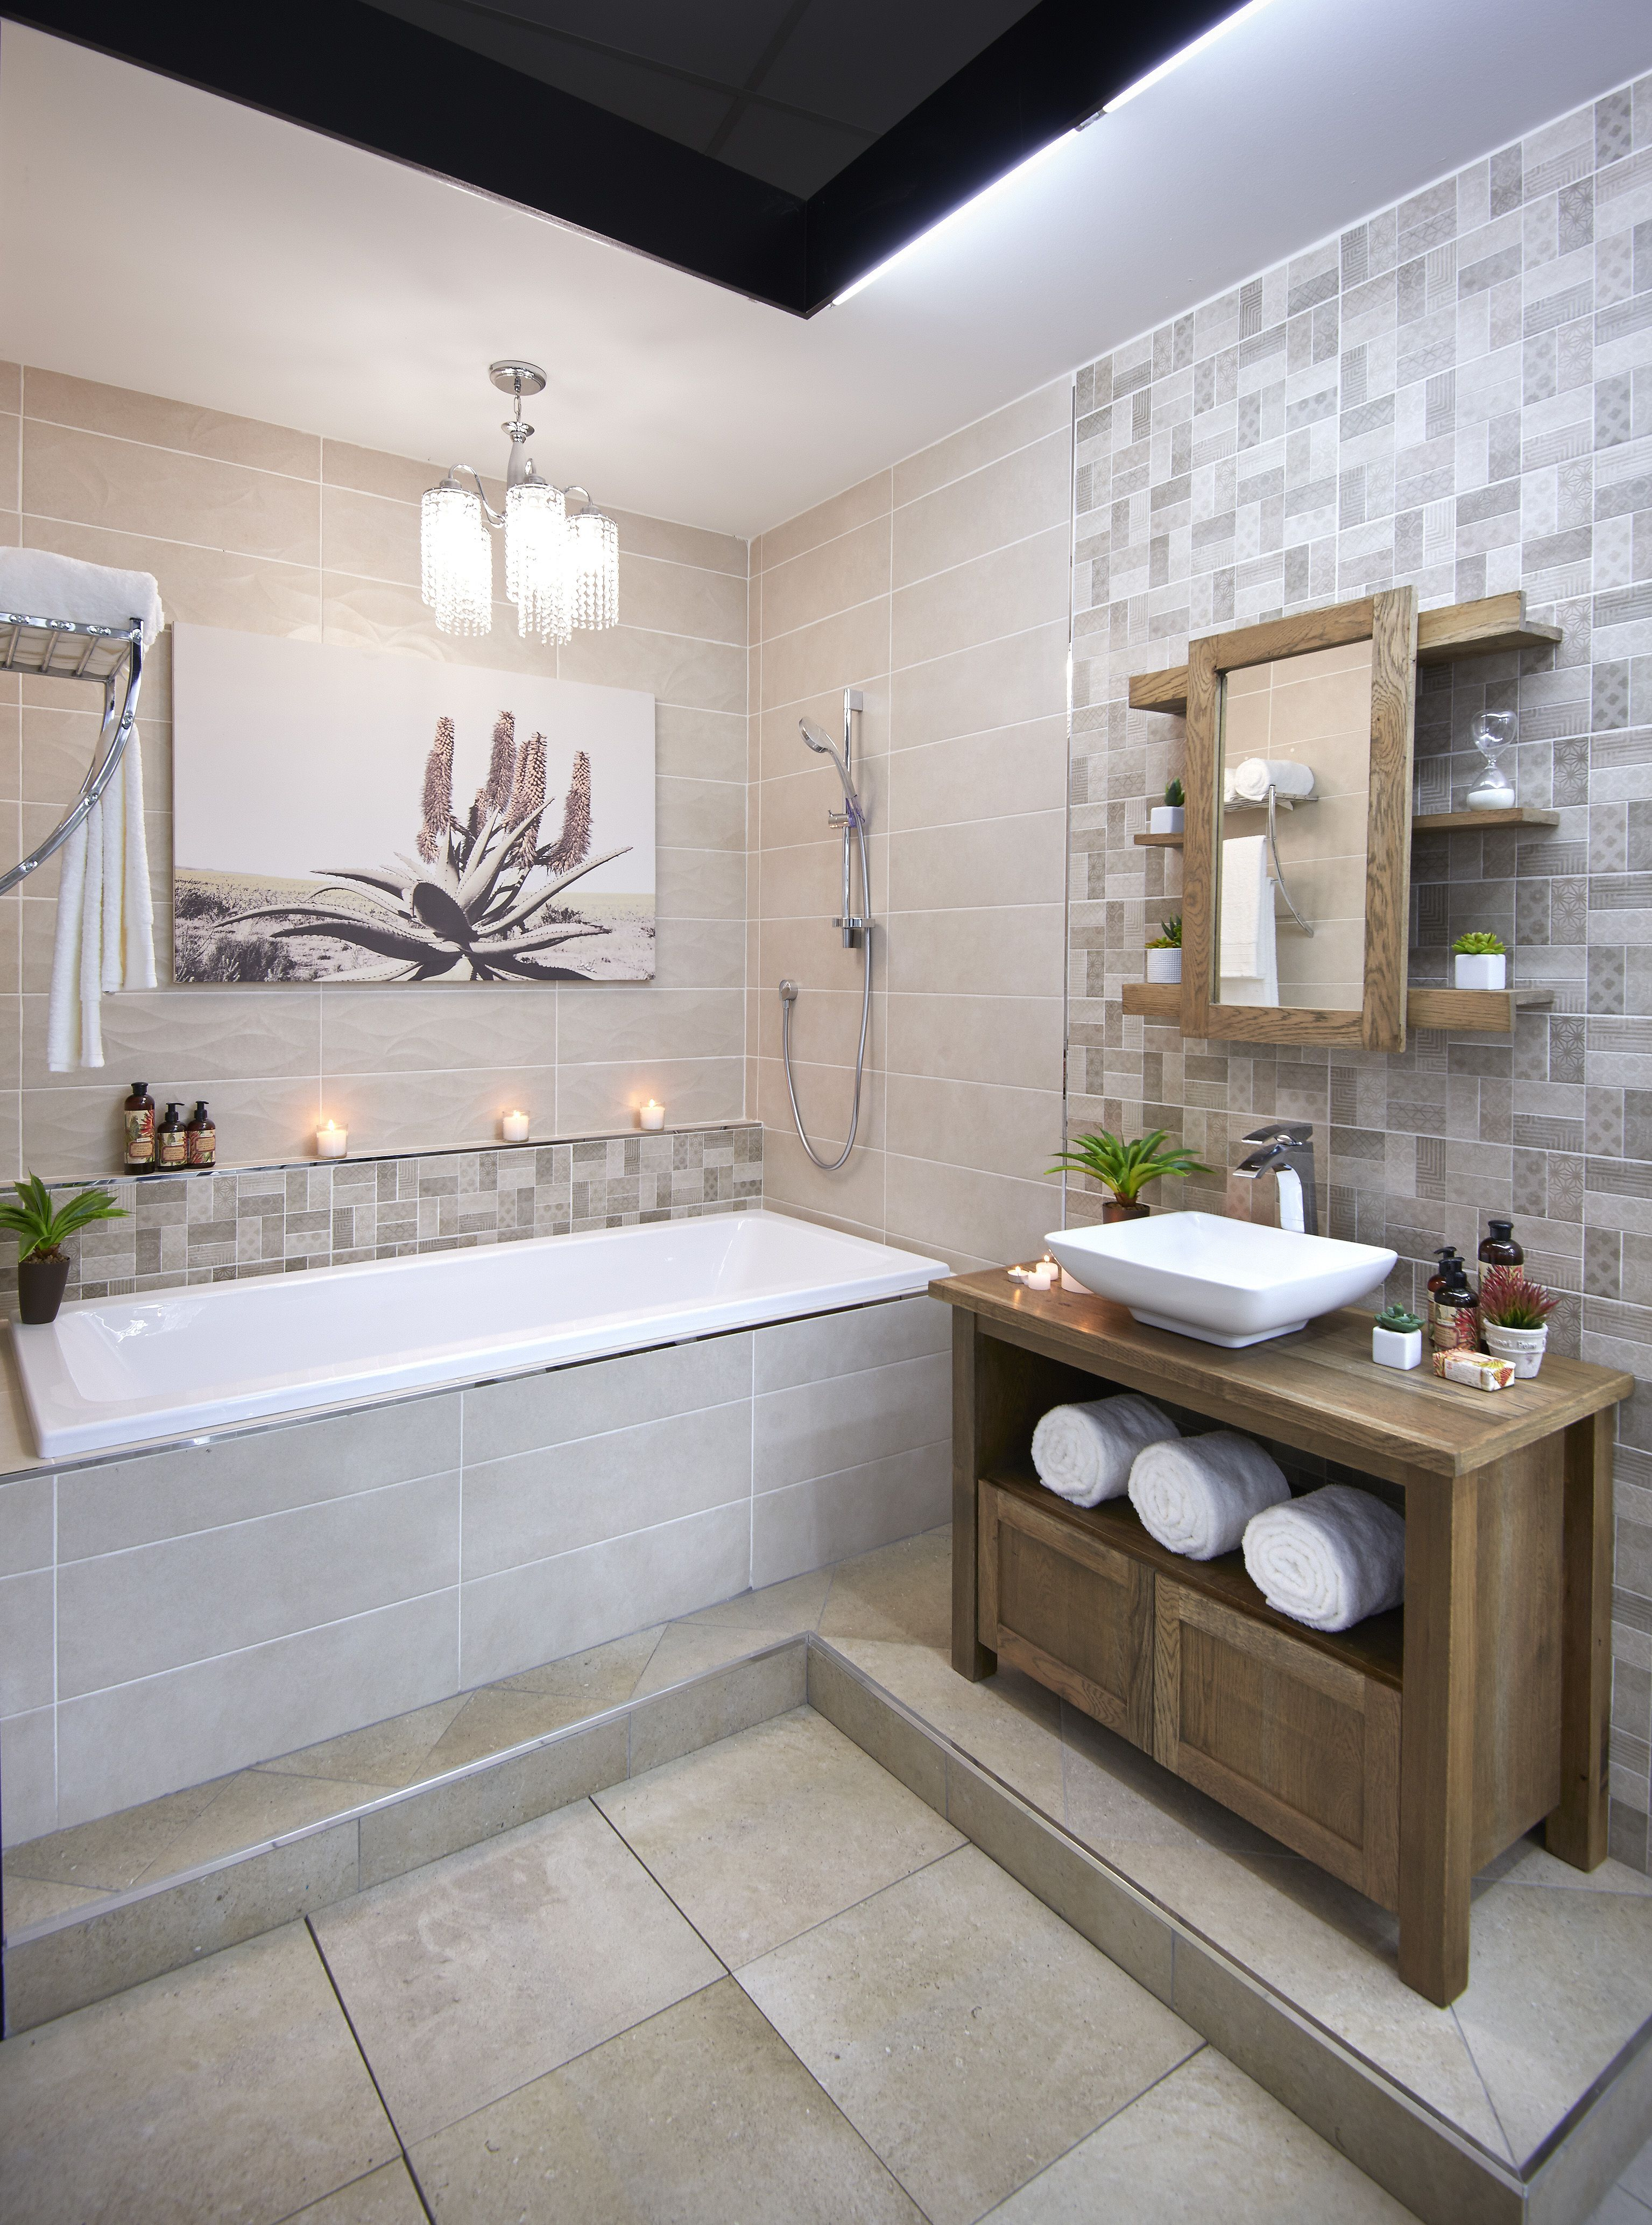 #bathroom #bizarre #beautiful | Bathroom inspiration ...